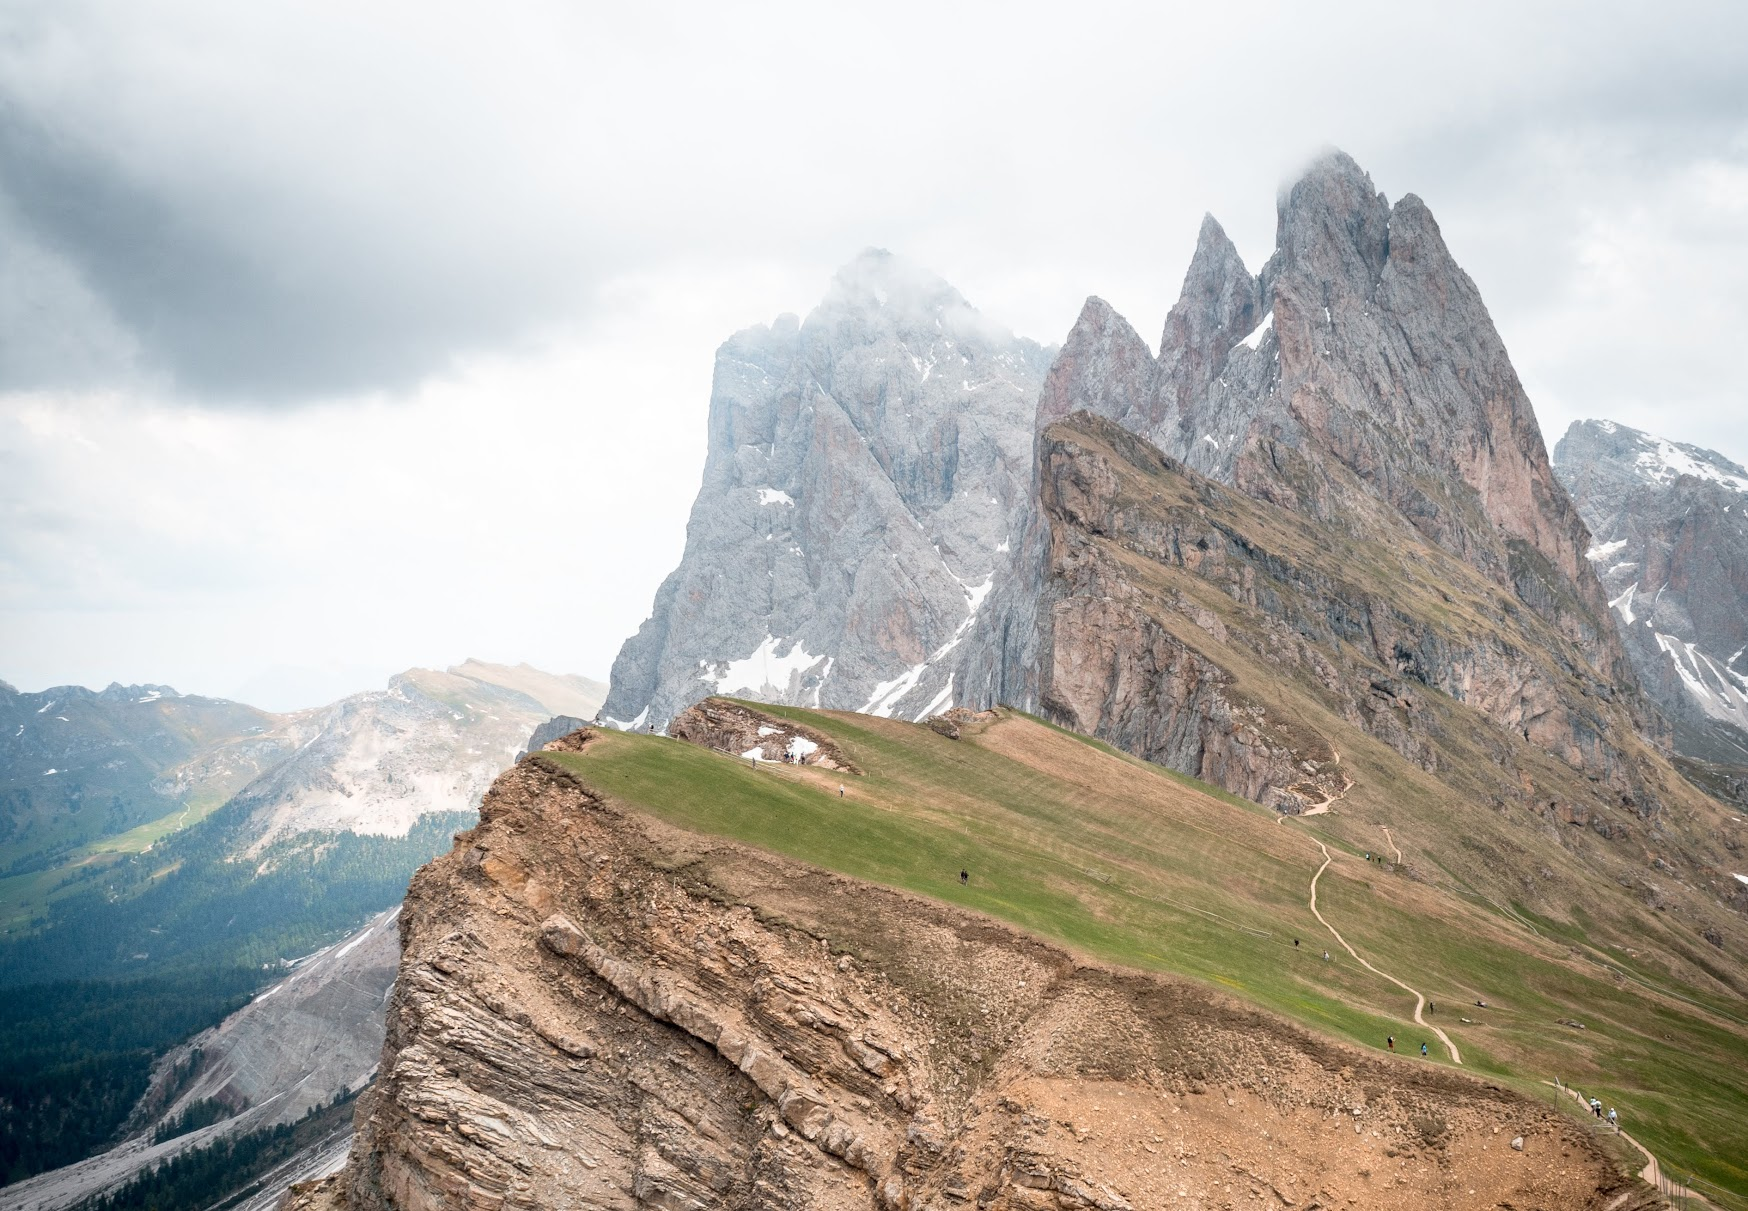 Seceda Peak, accessible from Seceda gondola from the town of Ortisei